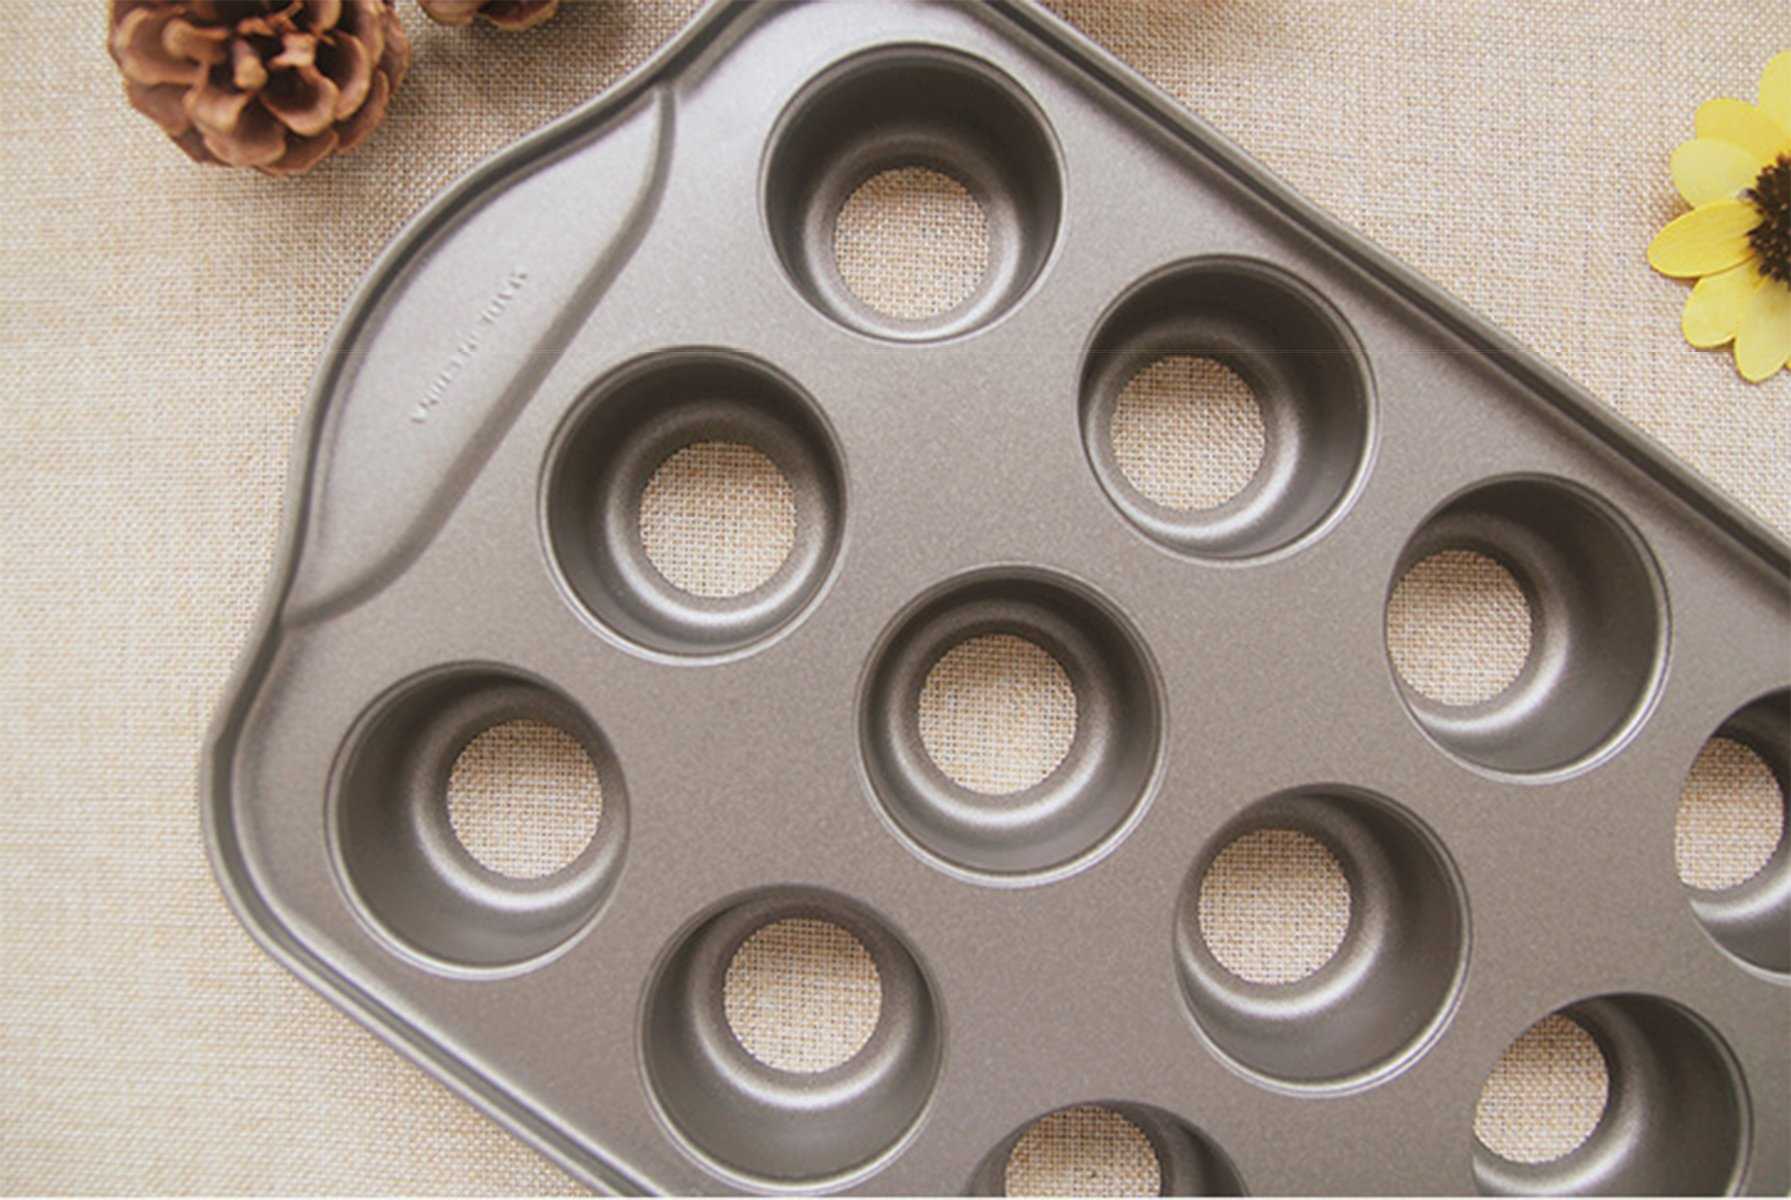 Tosnail 2 Pack 12 Cavity Mini Cheesecake Pan with Removable Bottom by Tosnail (Image #2)